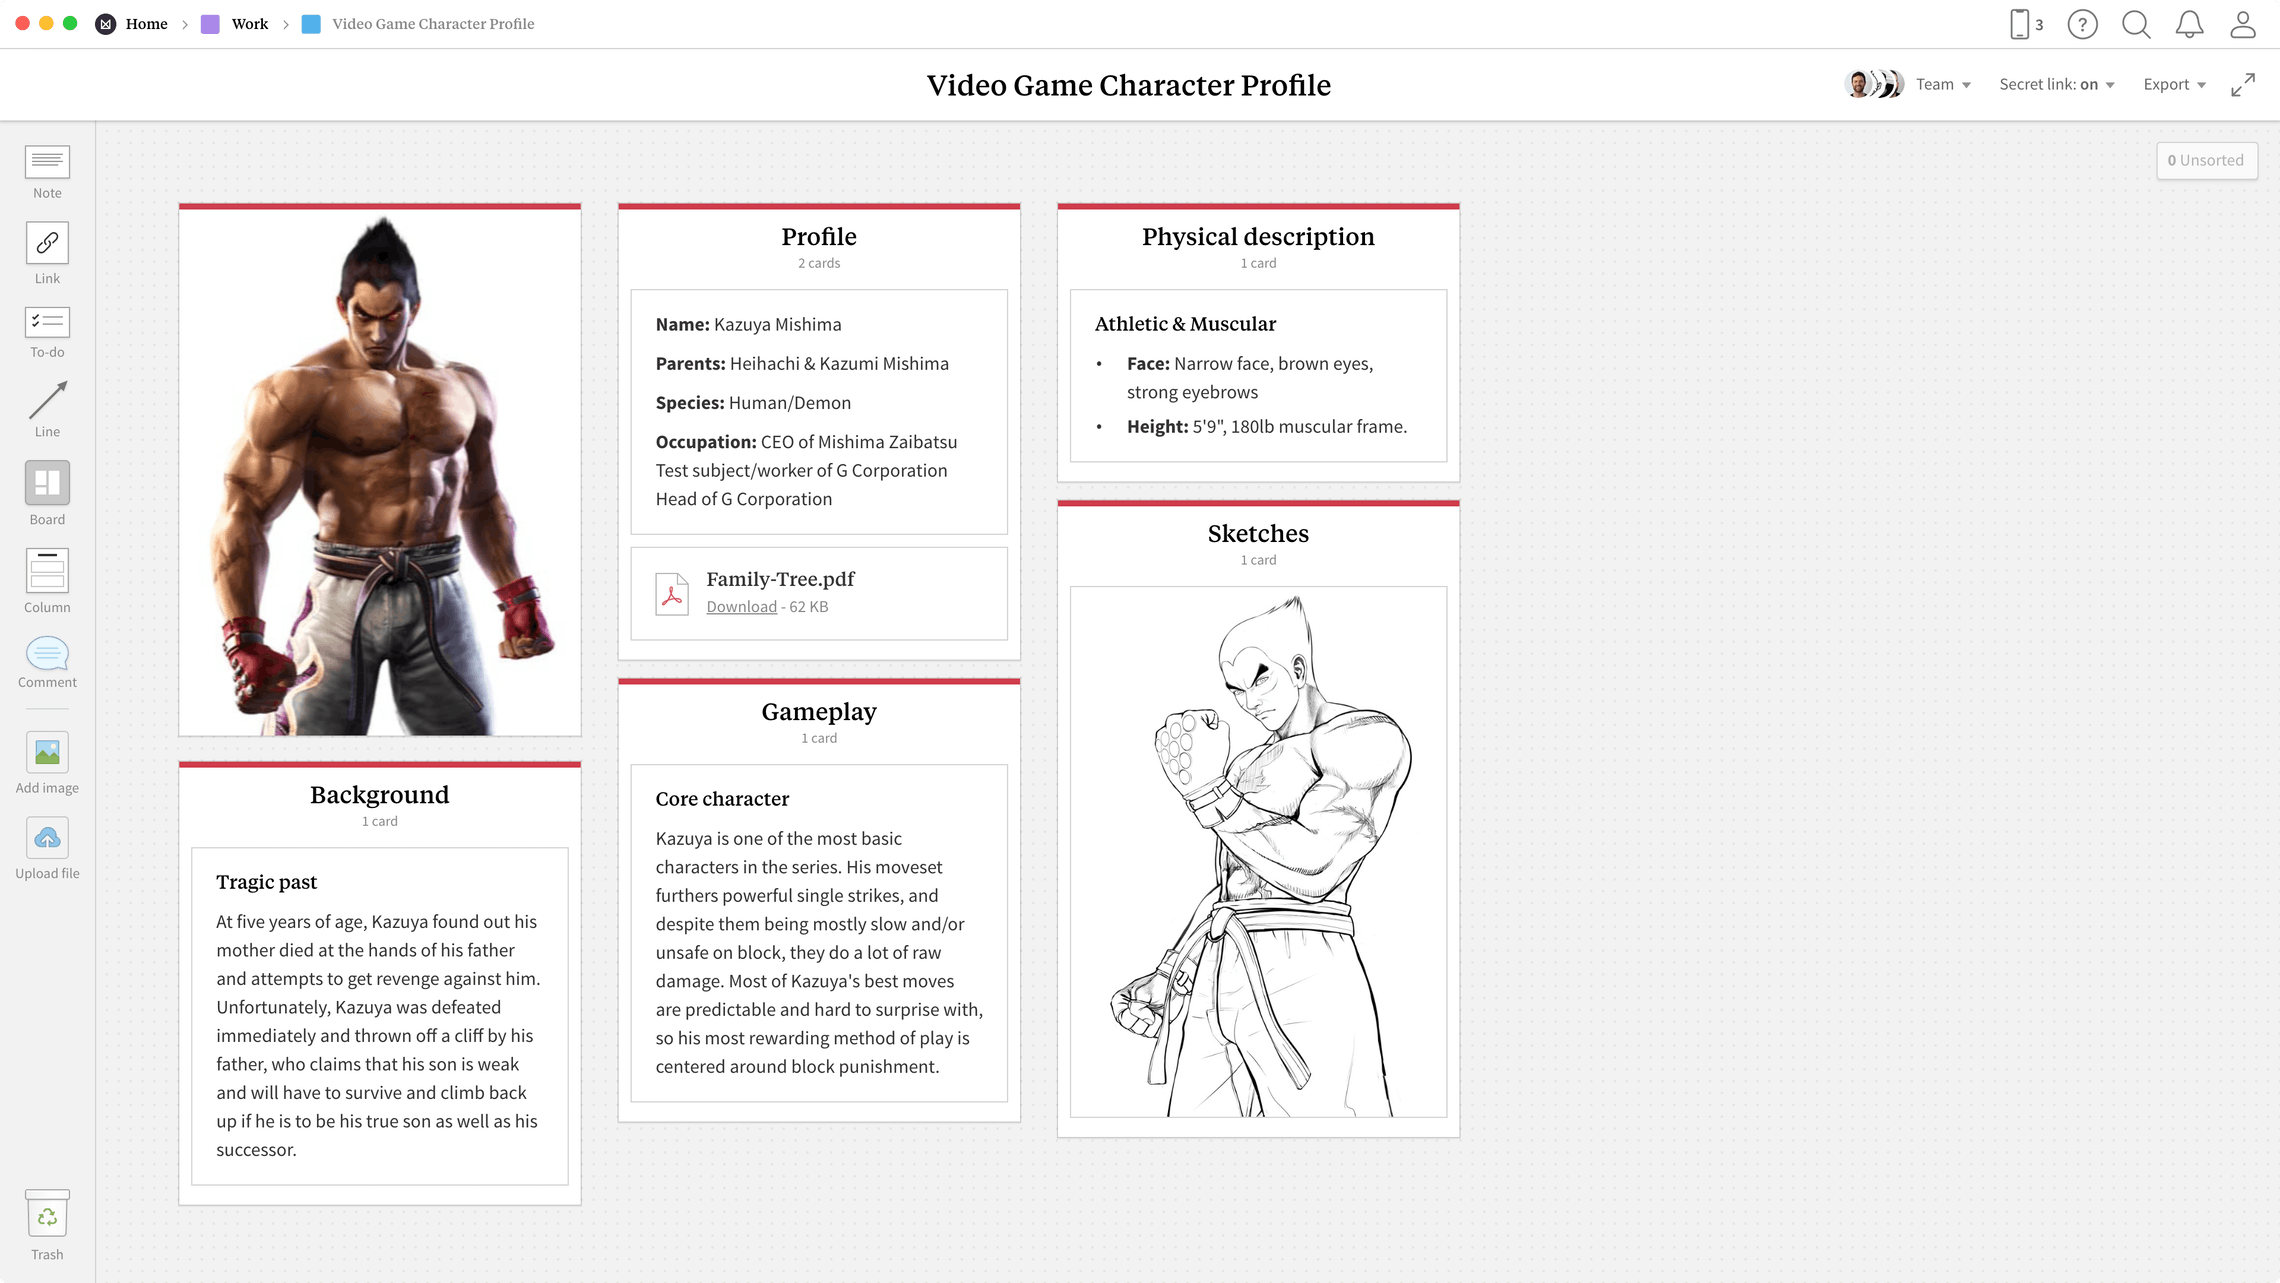 Video Game Character Profile Template, within the Milanote app